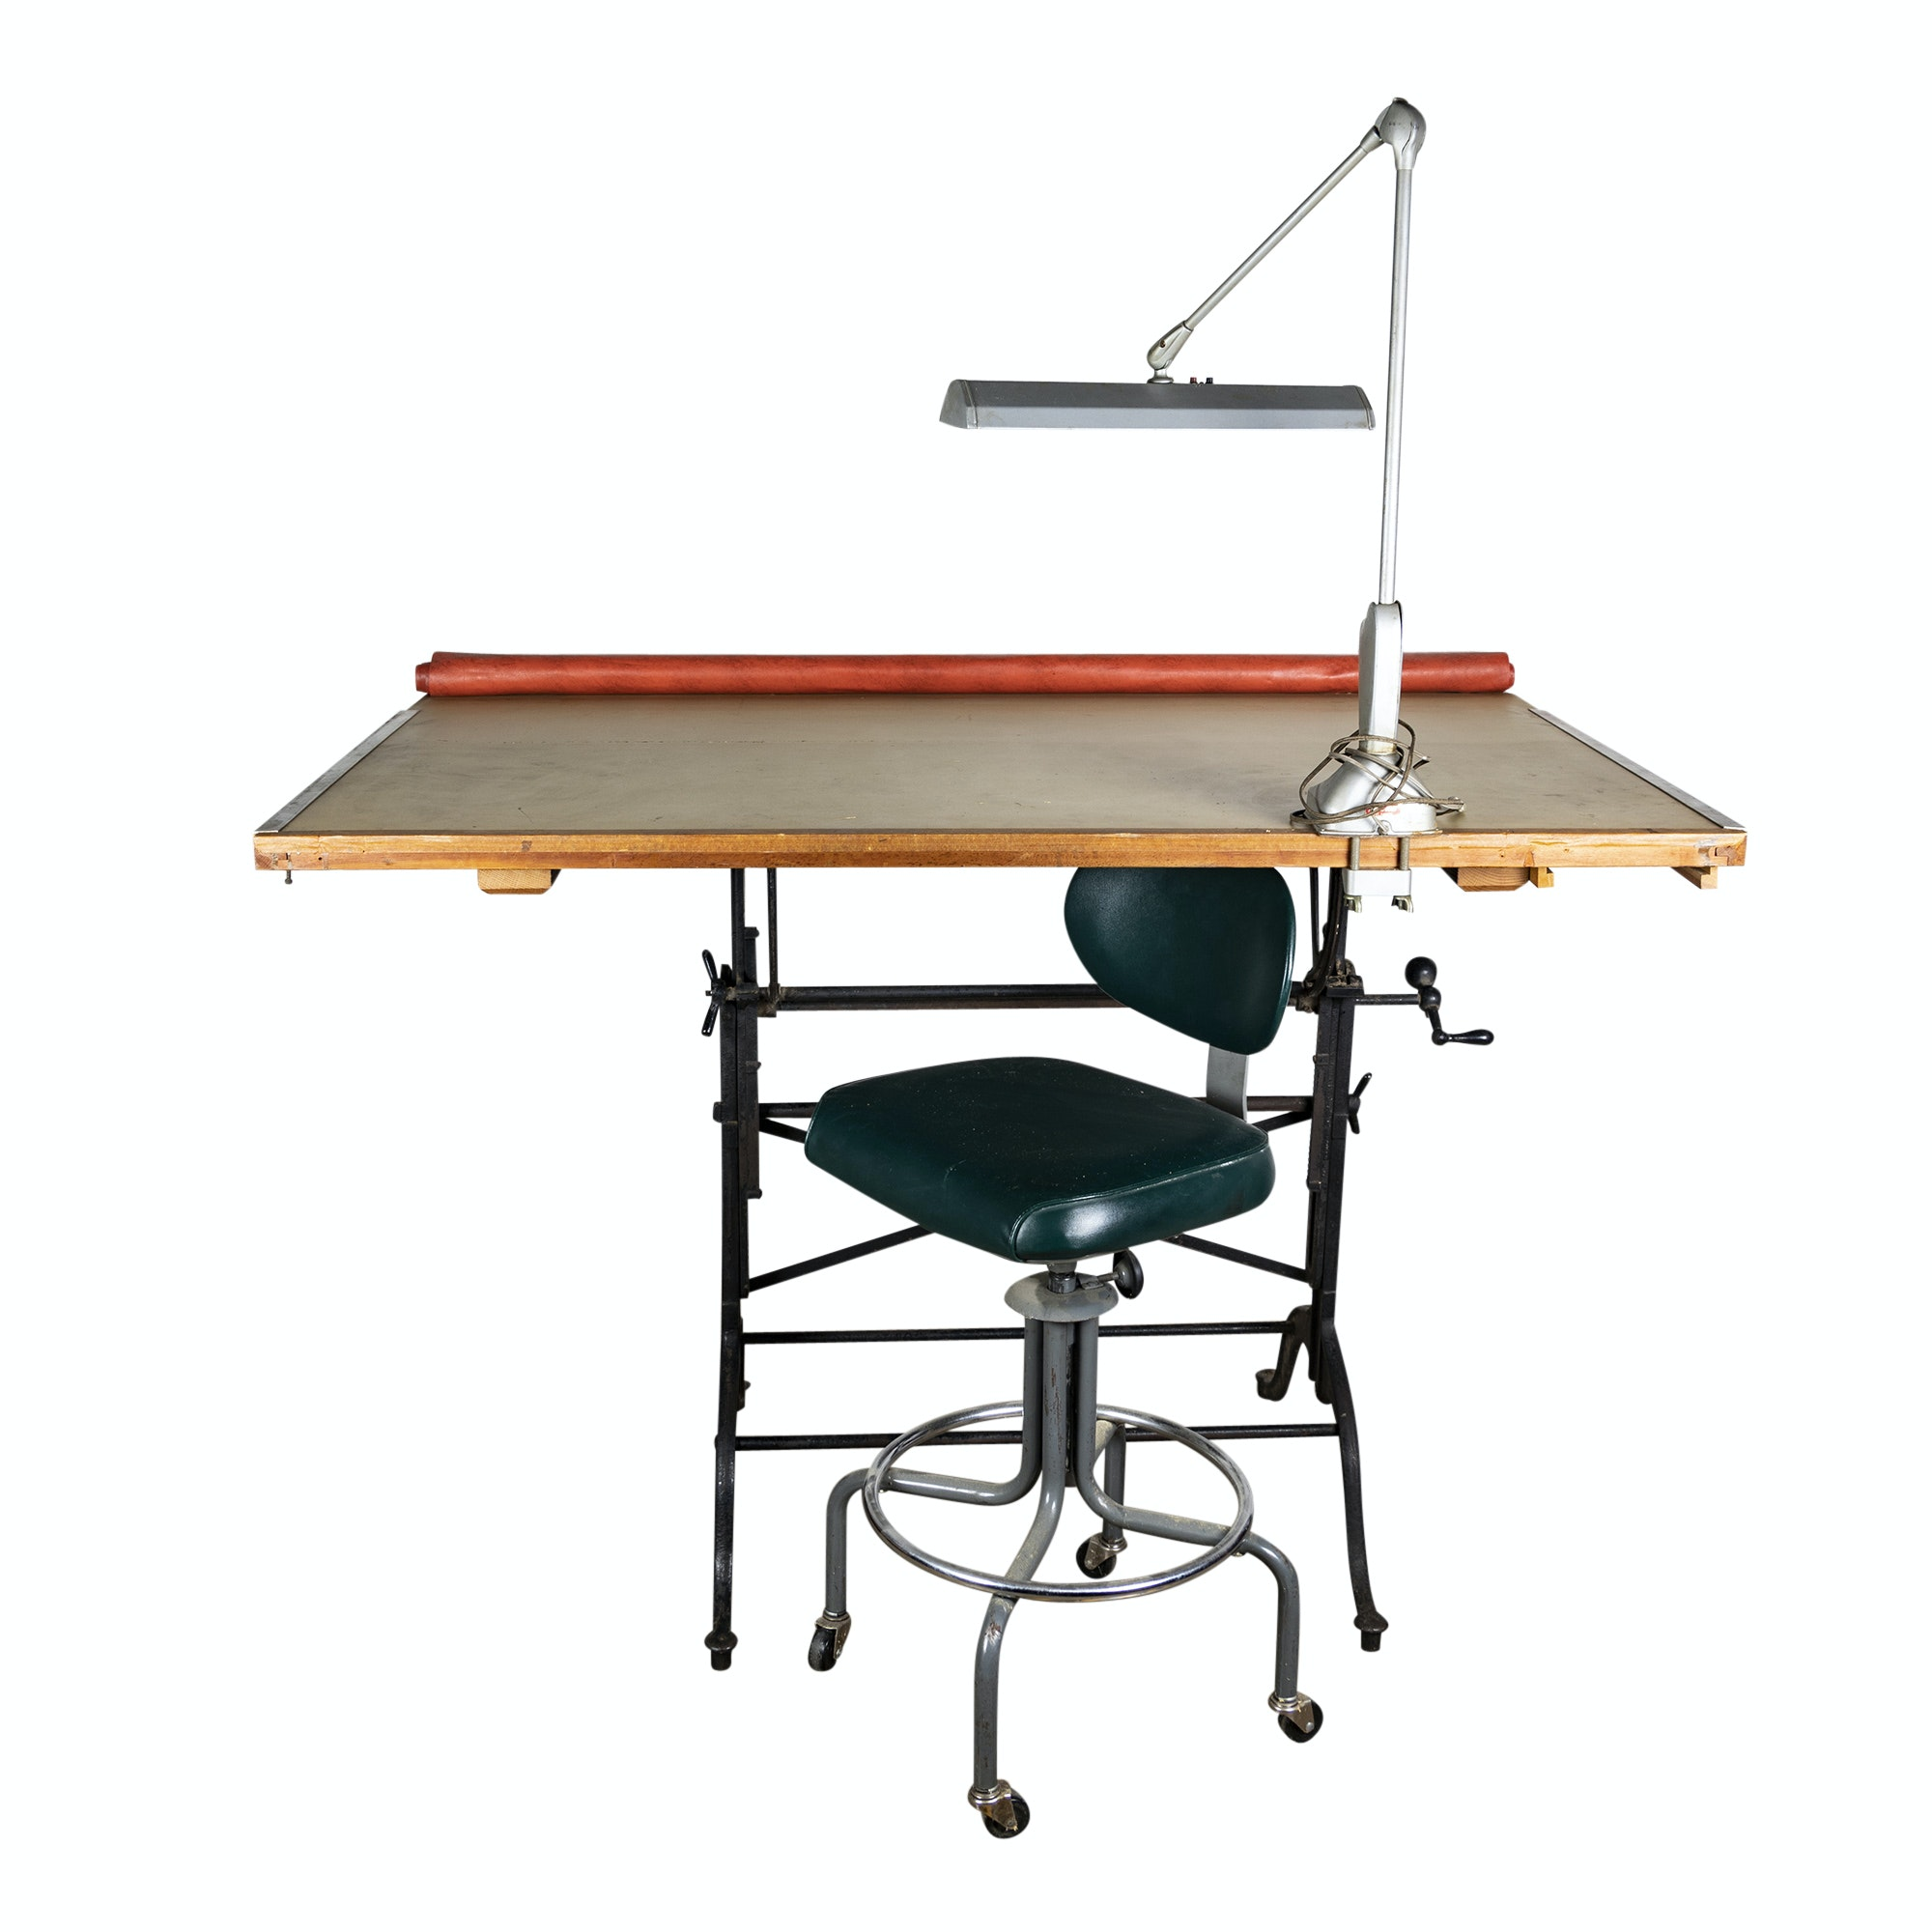 Metal and Wood Drafting Table with Royal Metal Stool and Magic Arm Lamp, 20th C.